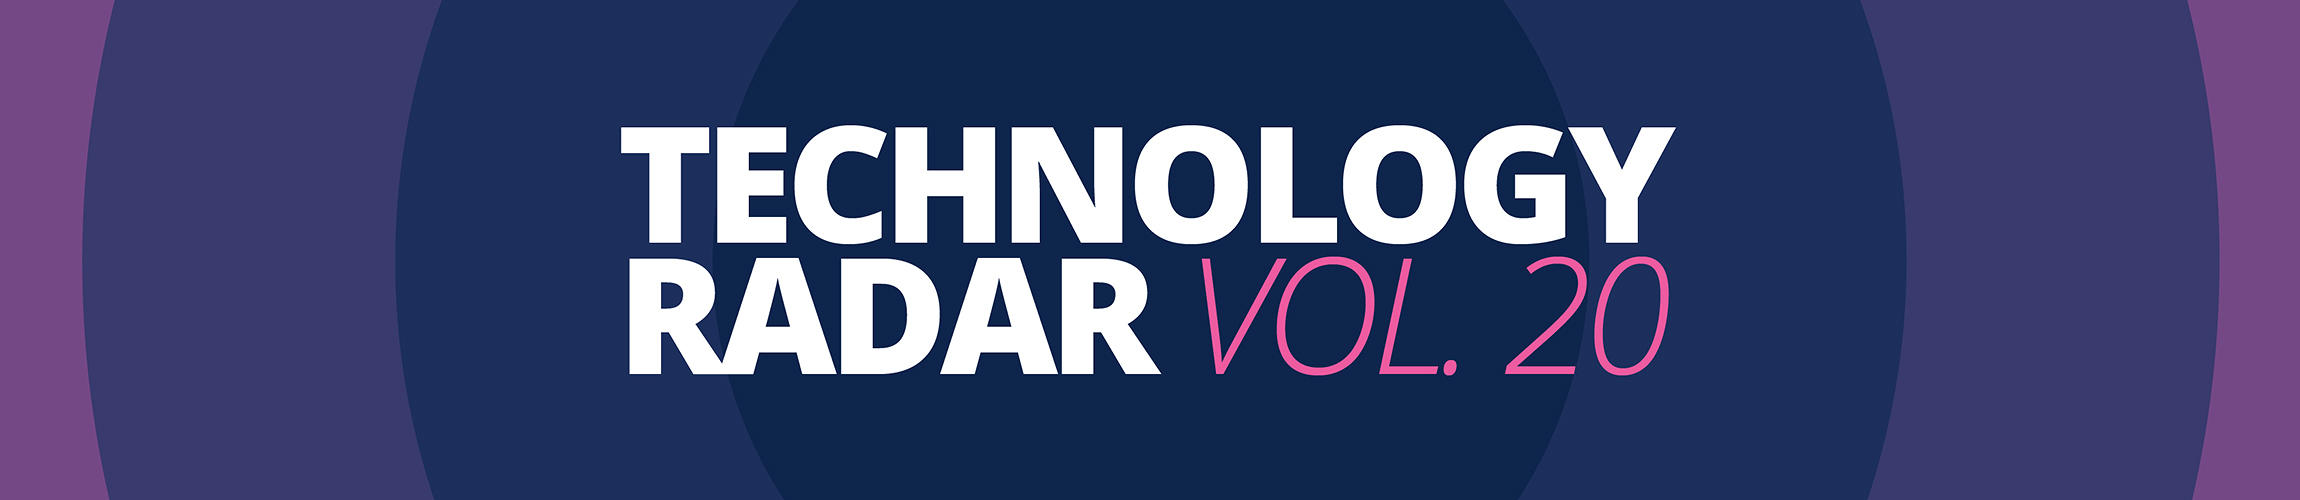 Technology Radar Vol 20